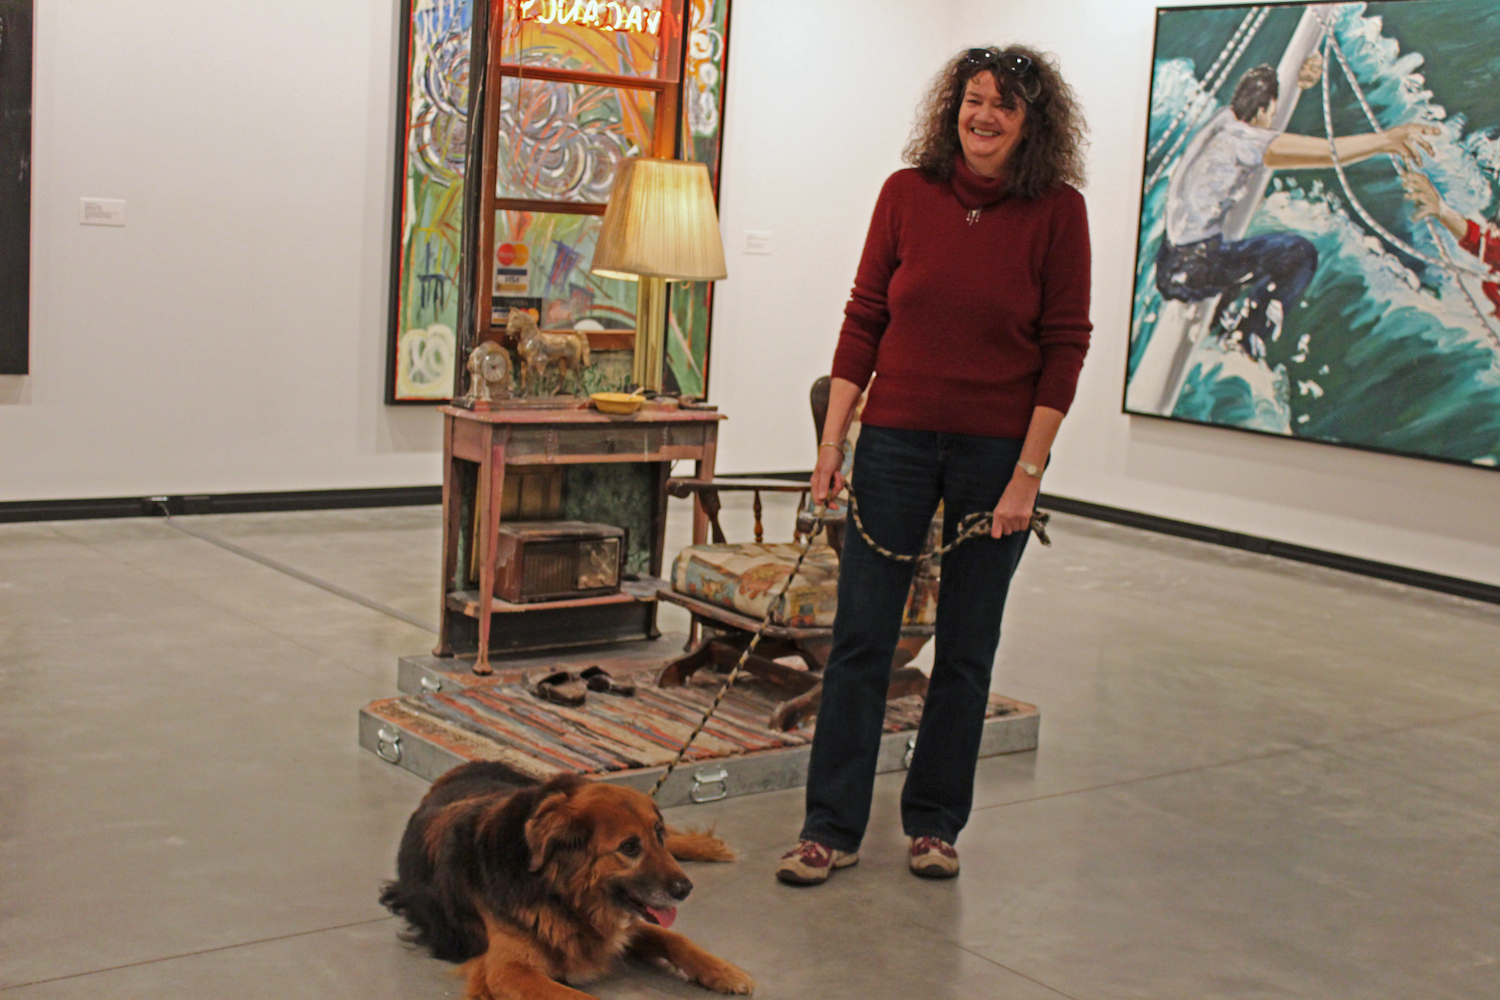 "Owner Lis with dog Milo at ""Useful Art #5: The Western Motel"" by Nancy Reddin Kienholz; Edward Kienholz, 1992. Image taken on March 13, 2013."